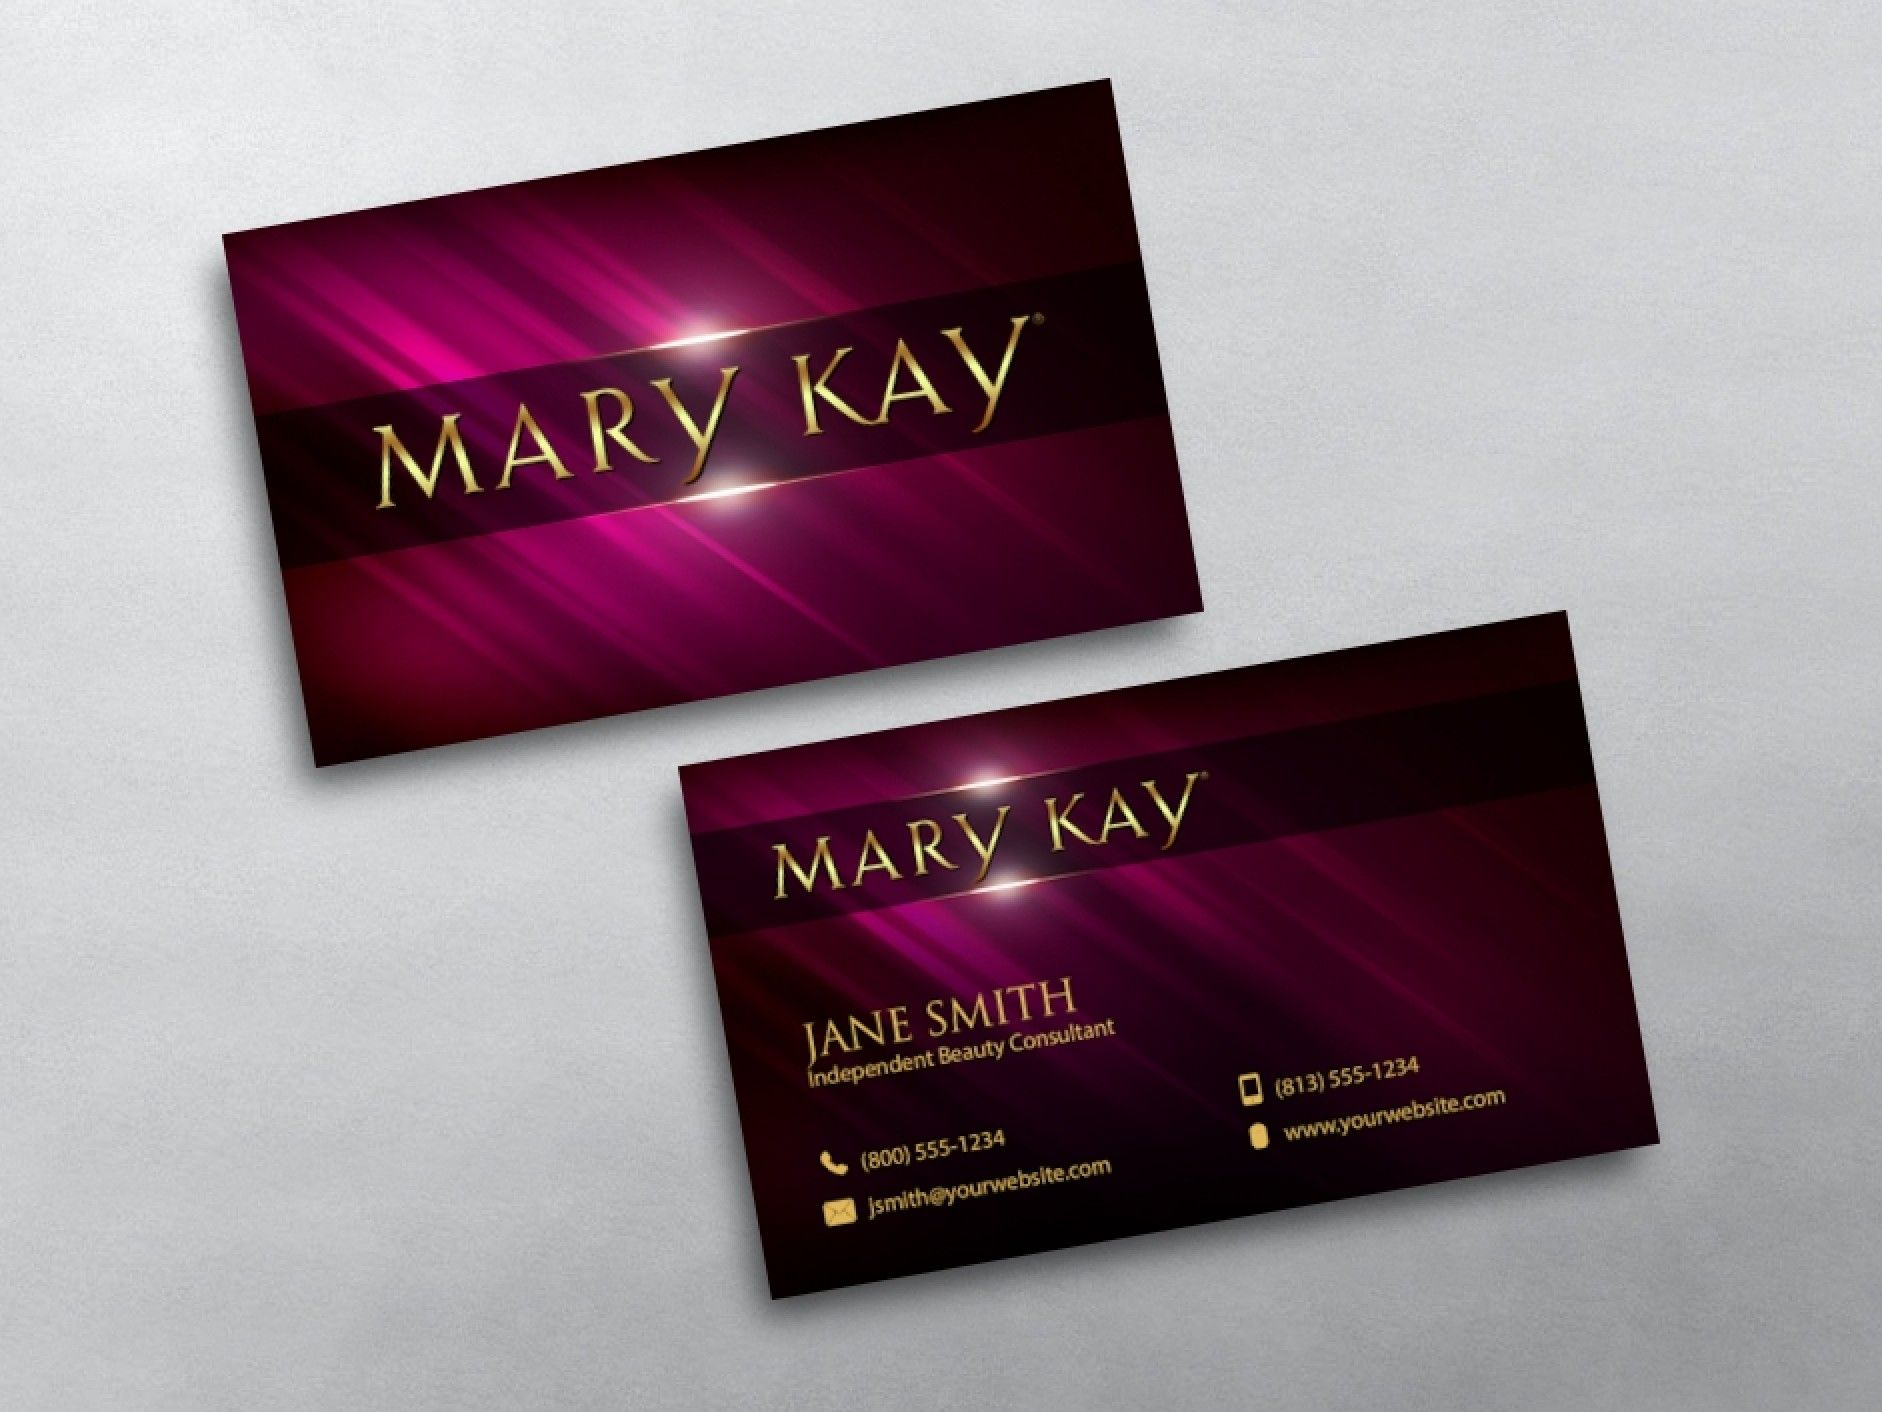 Mary Kay Business Cards In 2019   Pink Dreams   Pinterest   Free - Free Printable Mary Kay Business Cards